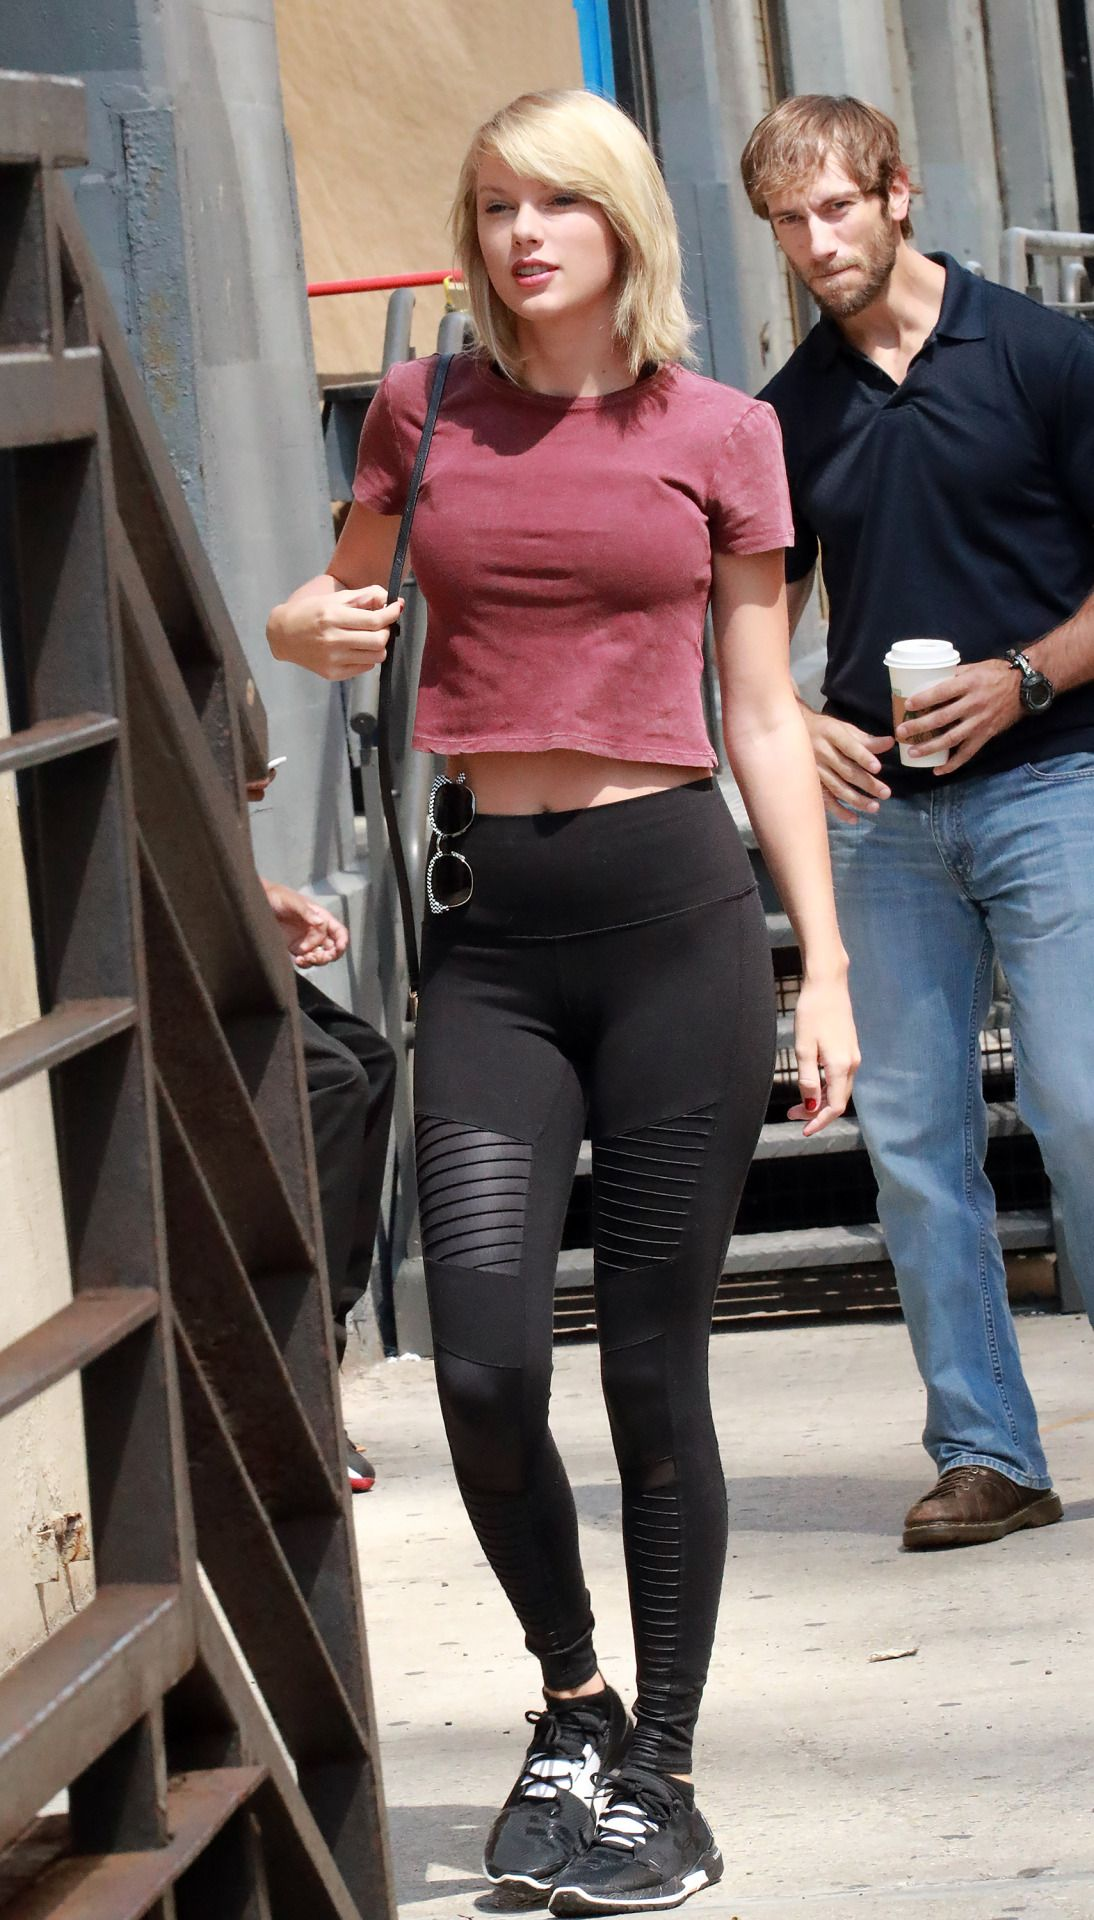 Taylor Swift 34b 24 33 August 24 2016 Arriving At The Gym In New York City New York Taylor Swift Style Taylor Swift Street Style Taylor Swift Hot